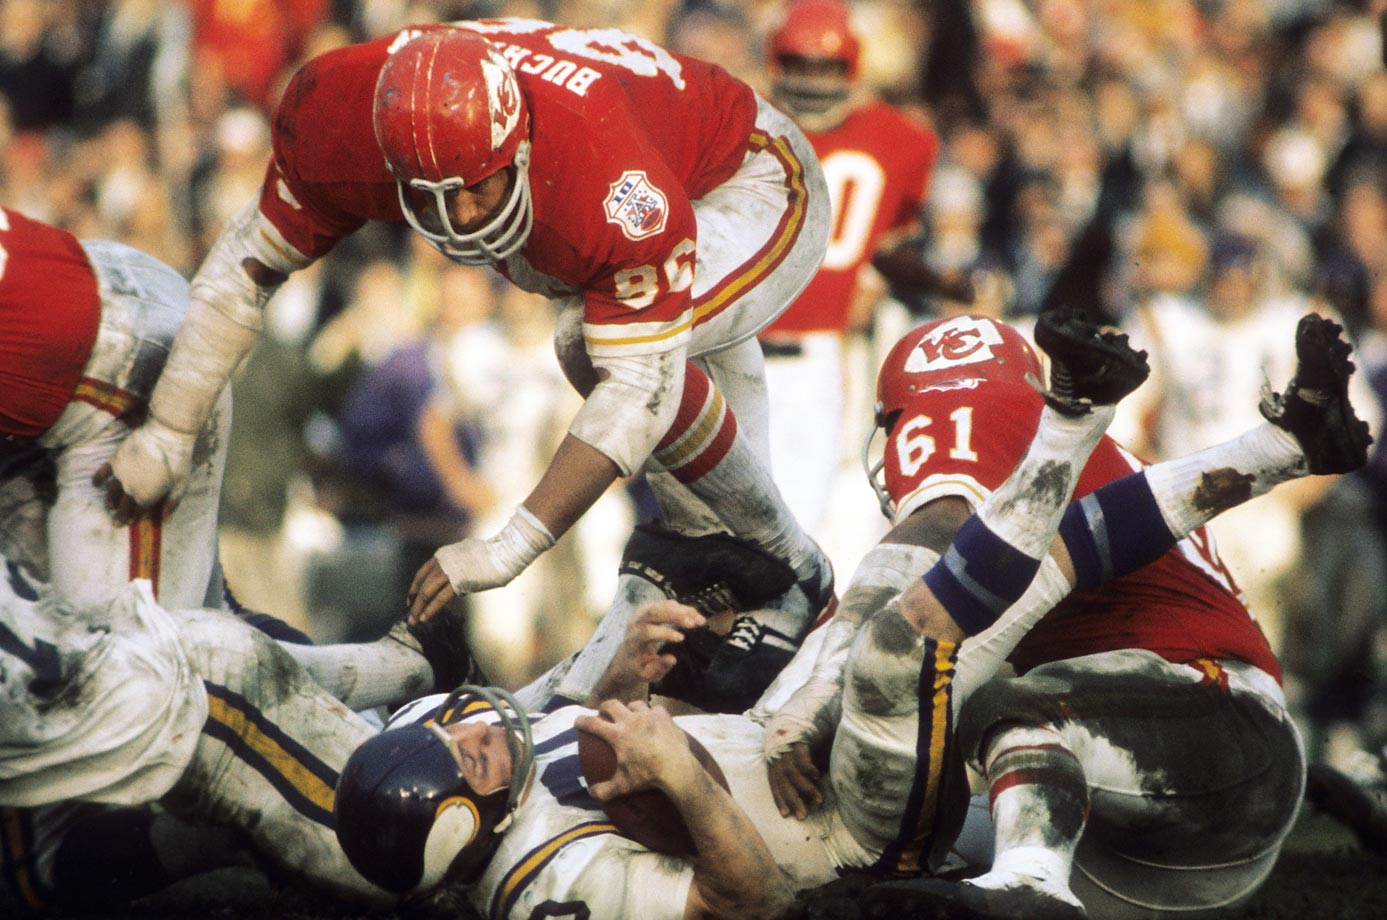 The Kansas Chiefs defense recovered two fumbles, made three interceptions and held the Minnesota Vikings to 67 yards rushing (172 passing), thanks in part to Buck Buchanan (86) and Curley Culp (61).